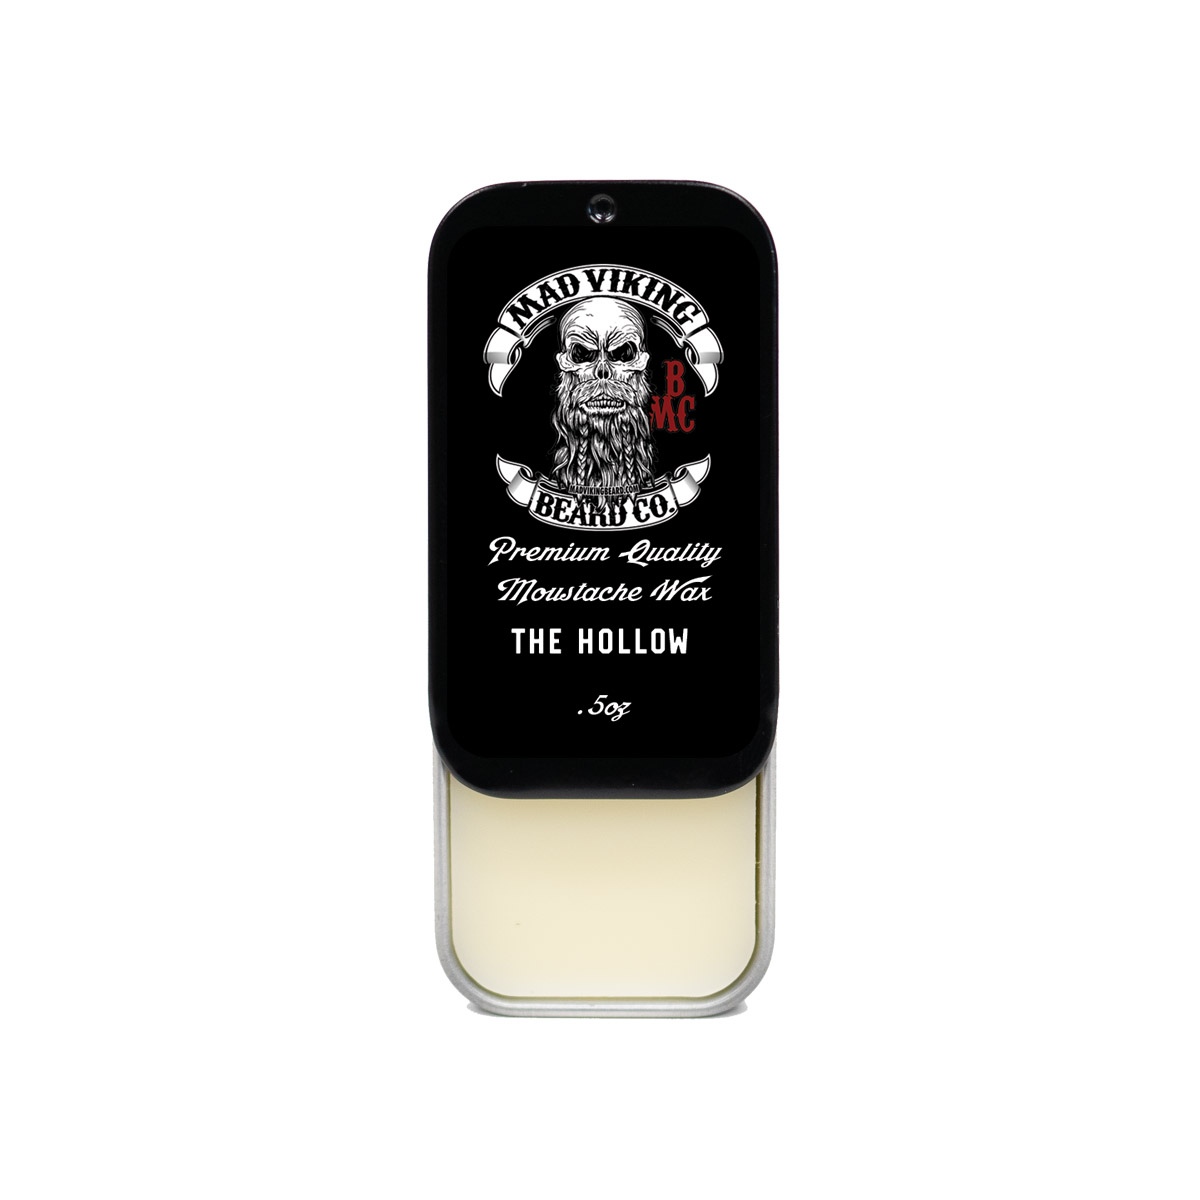 Mad Viking Hollow mustache wax slide top tin